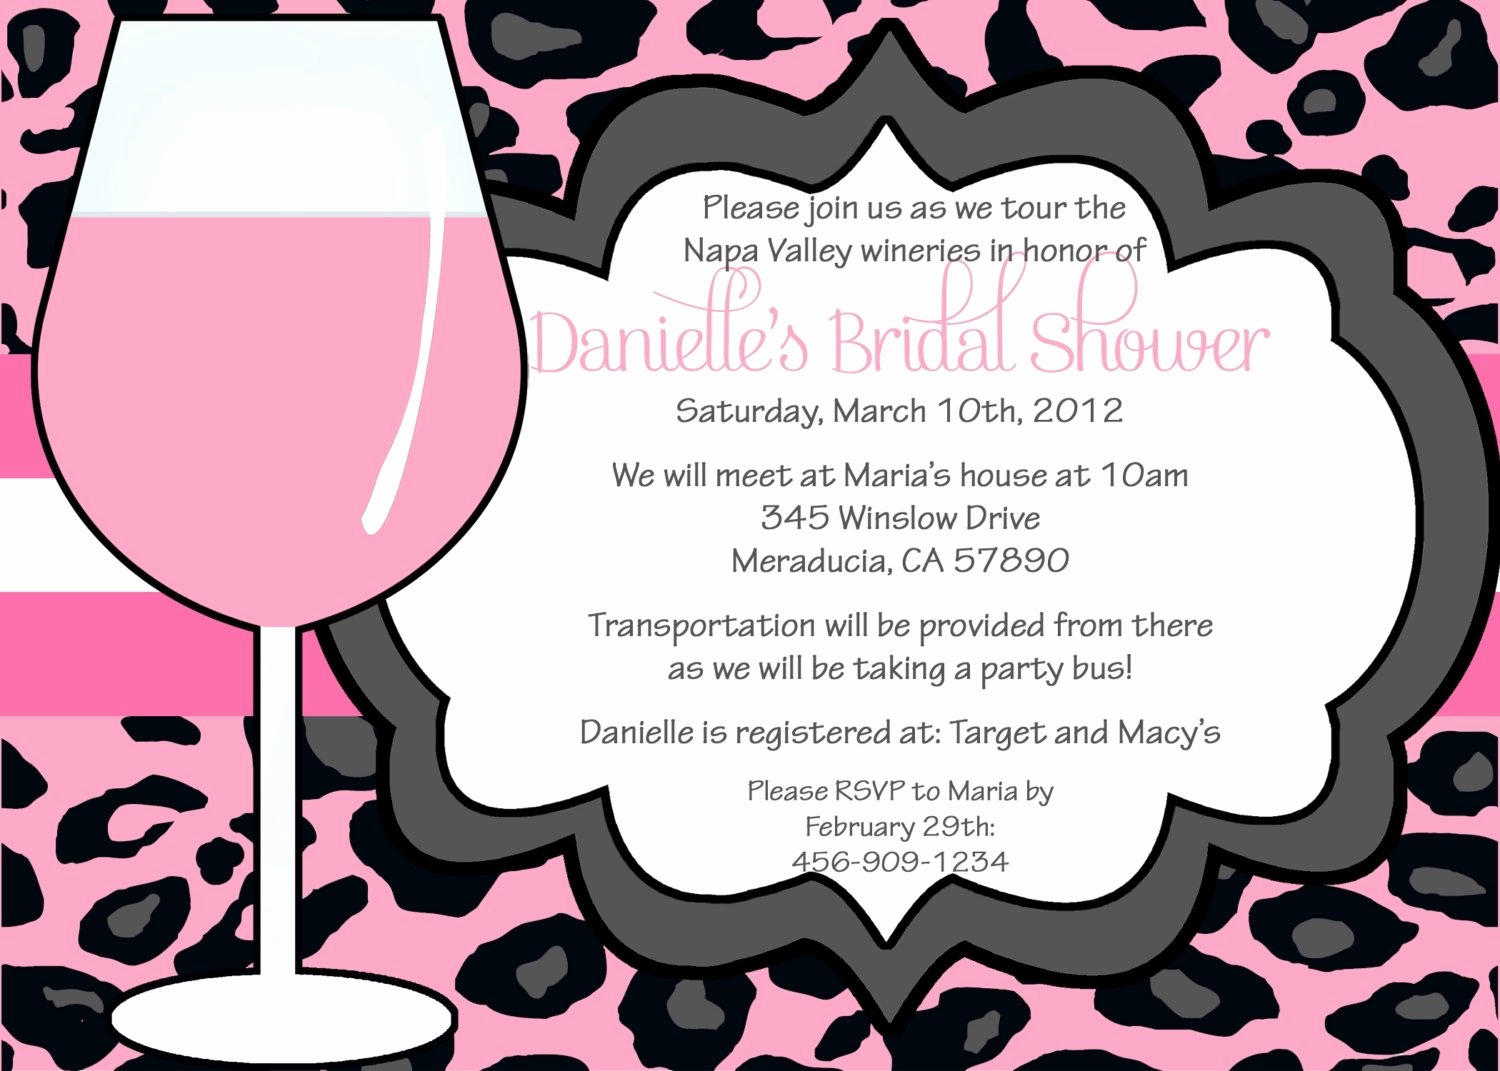 Joint Bachelor Bachelorette Party Invitation Lovely 10 Great Bined Bachelor Bachelorette Party Ideas 2019